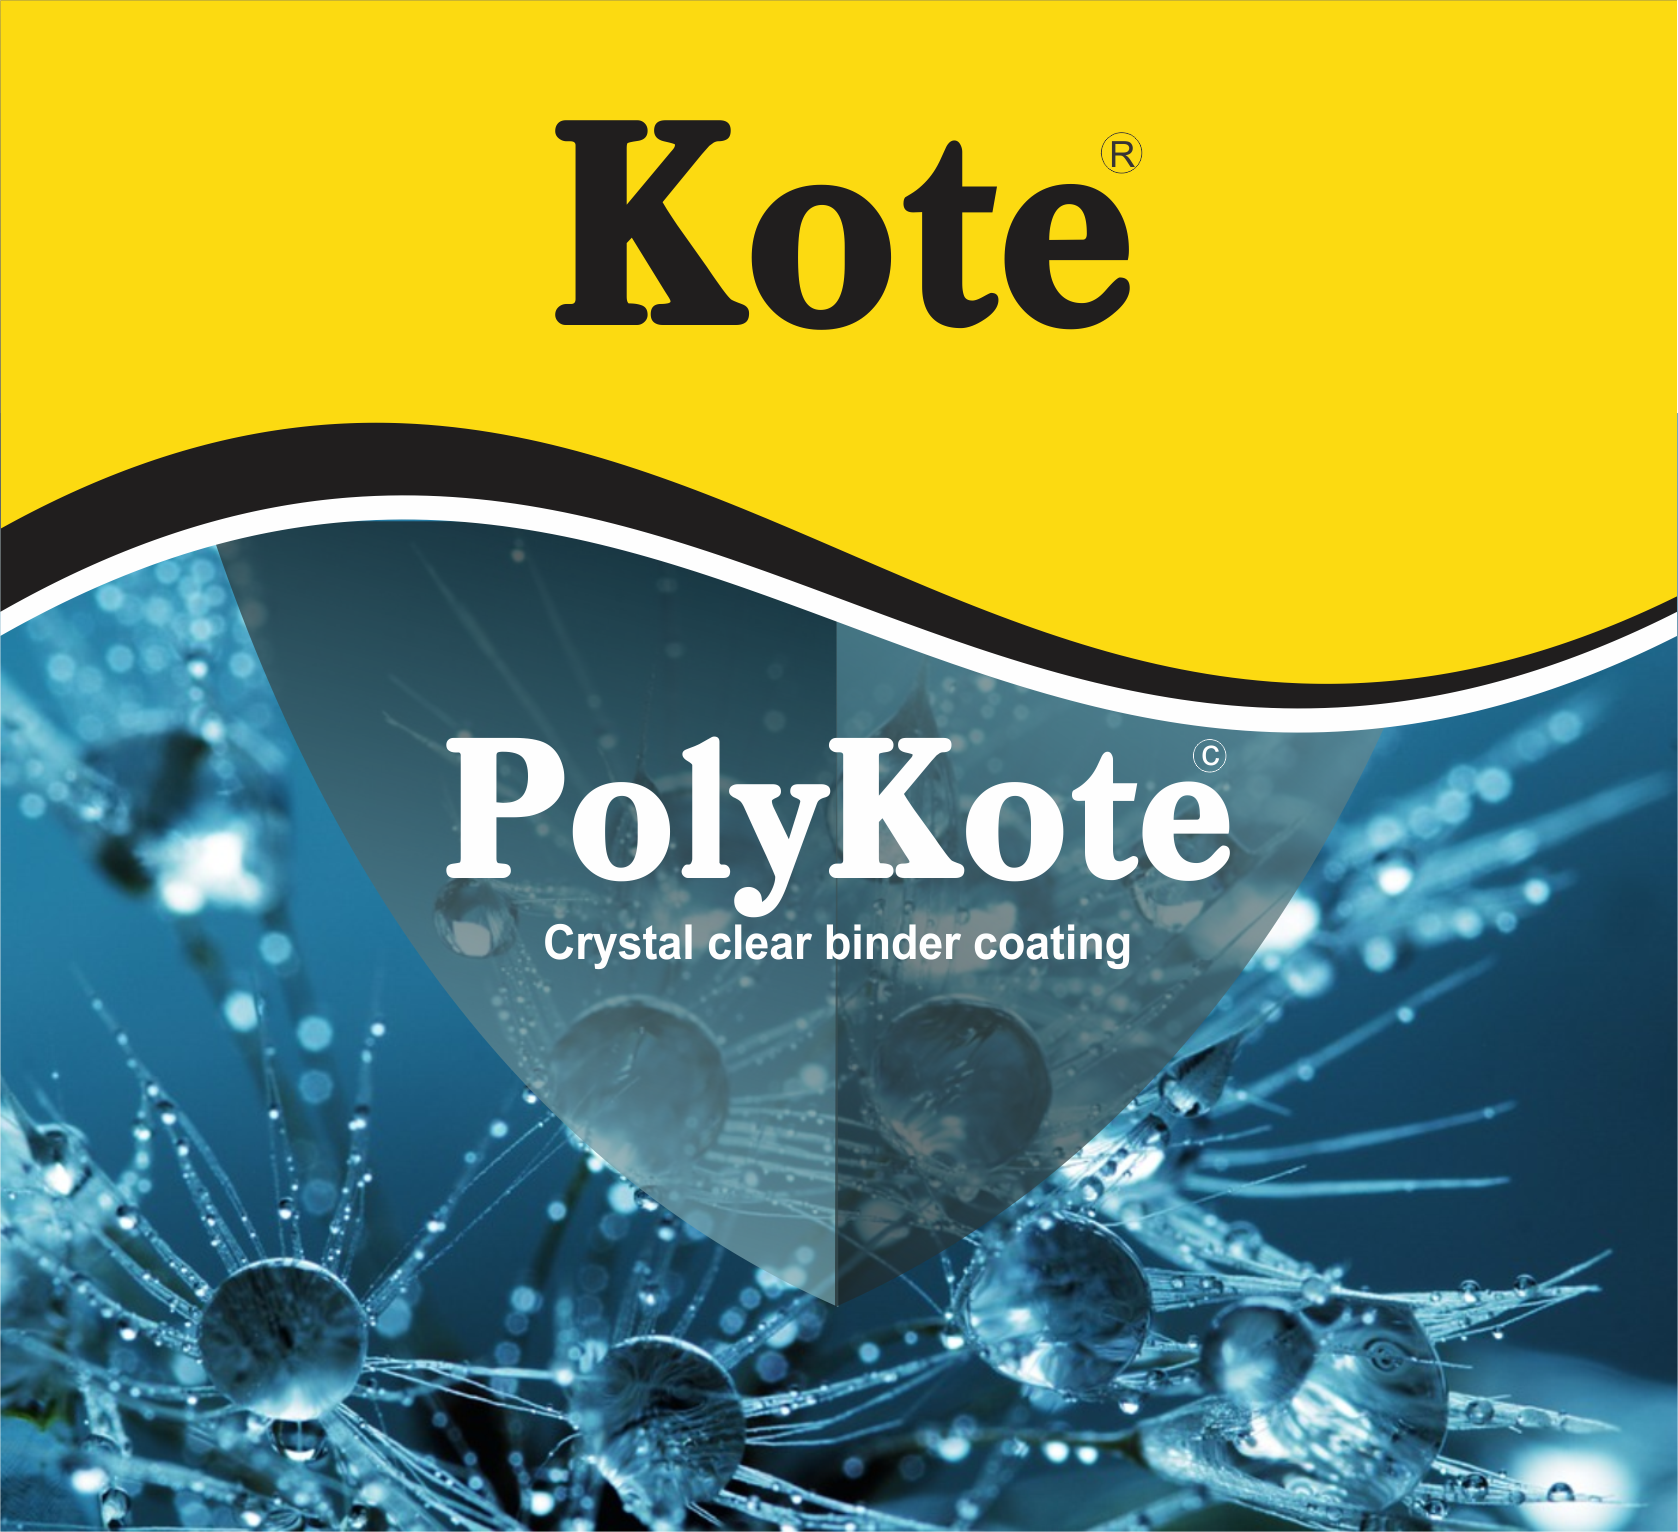 PolyKote Label